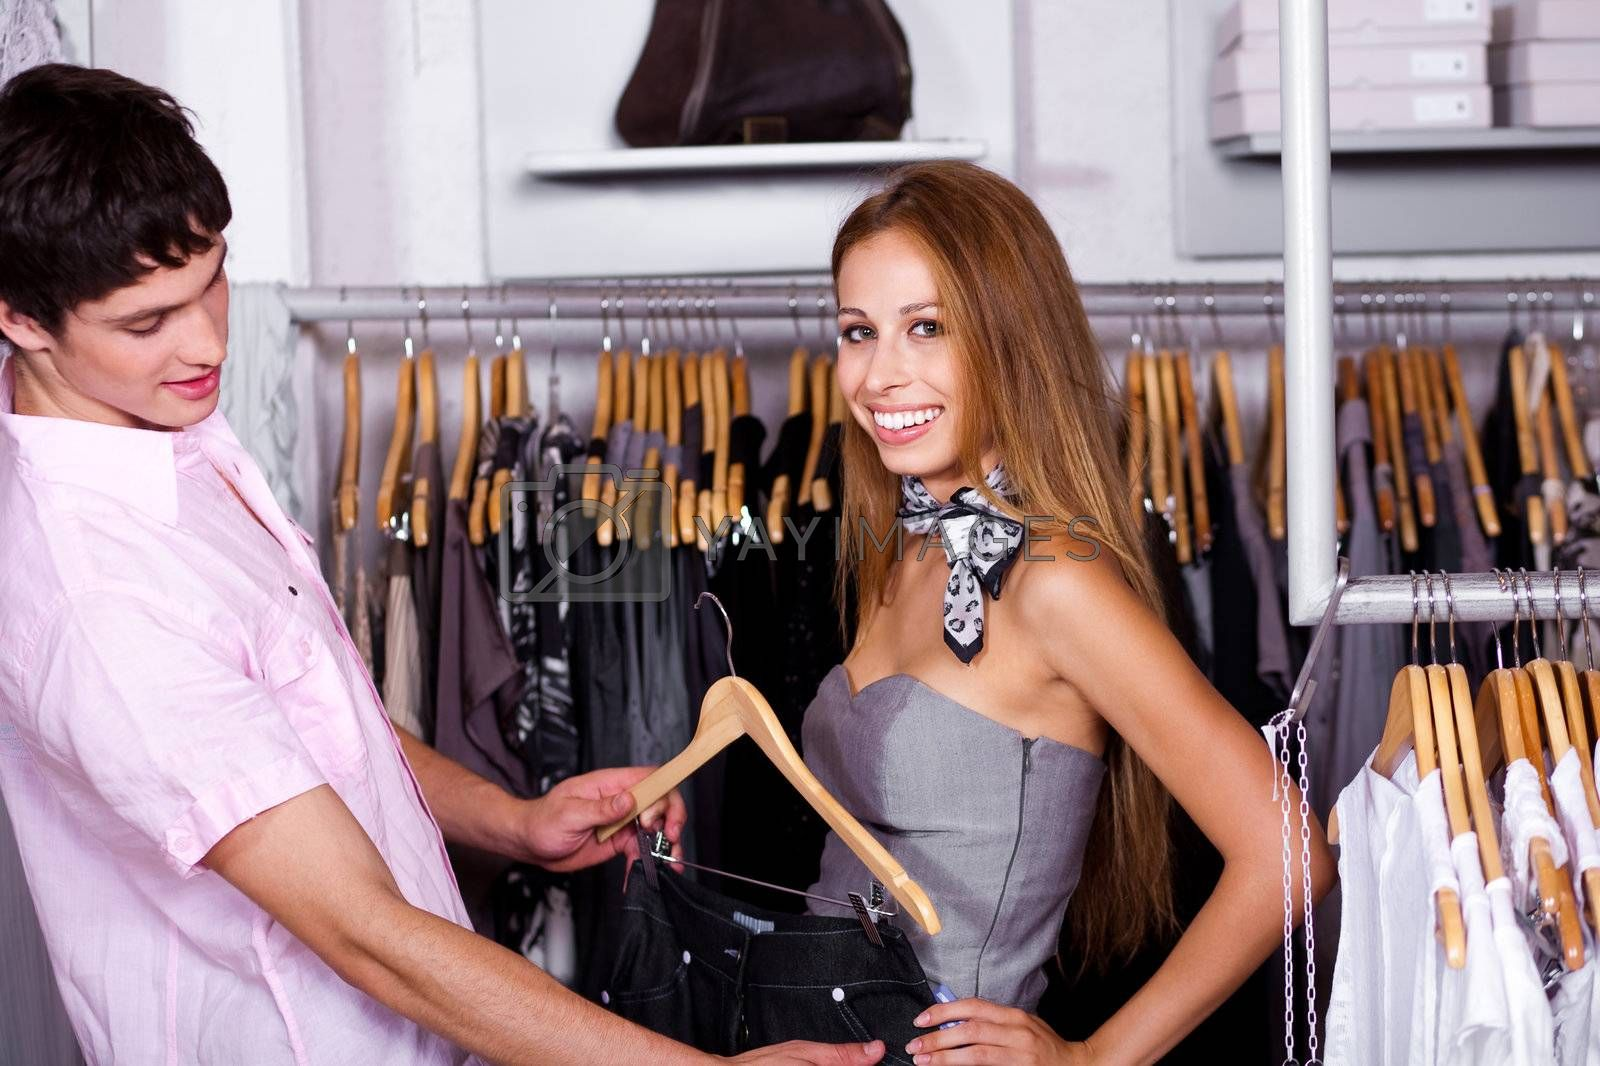 Couple trying outfits at retail shop